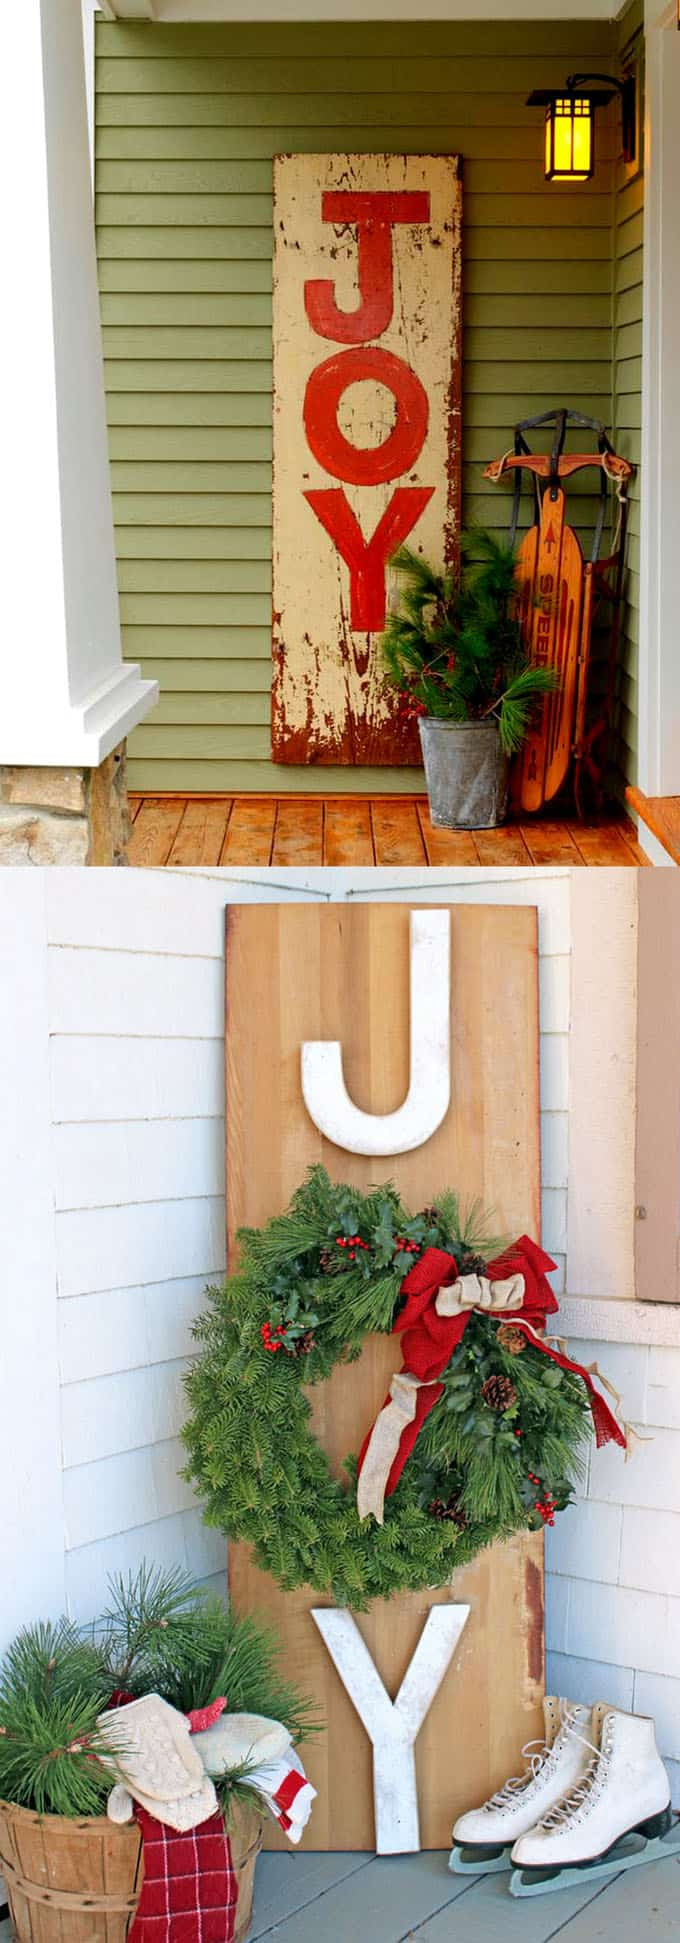 DIY Outdoor Christmas Decorations  Gorgeous Outdoor Christmas Decorations 32 Best Ideas